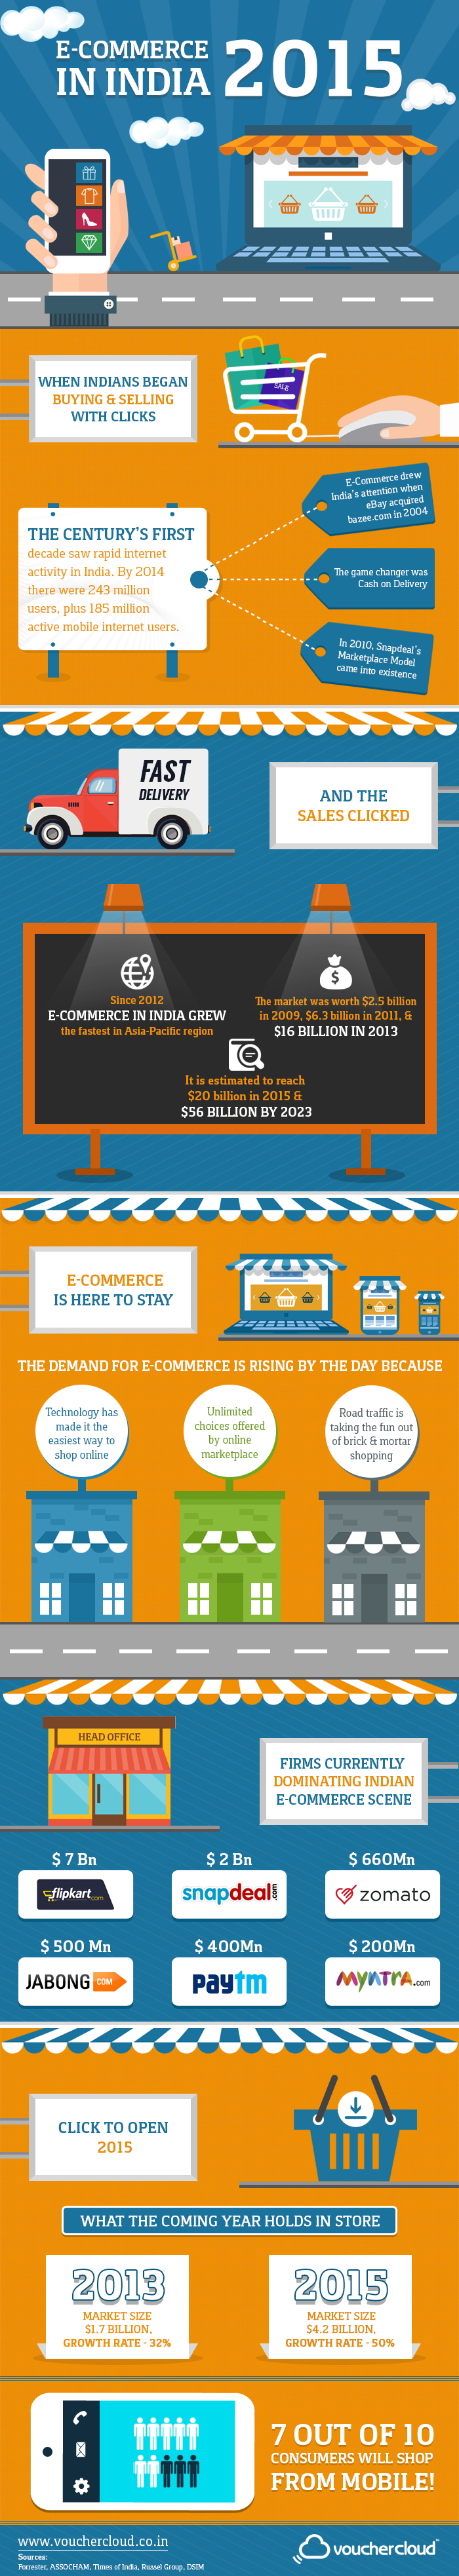 ecommerce india 2015